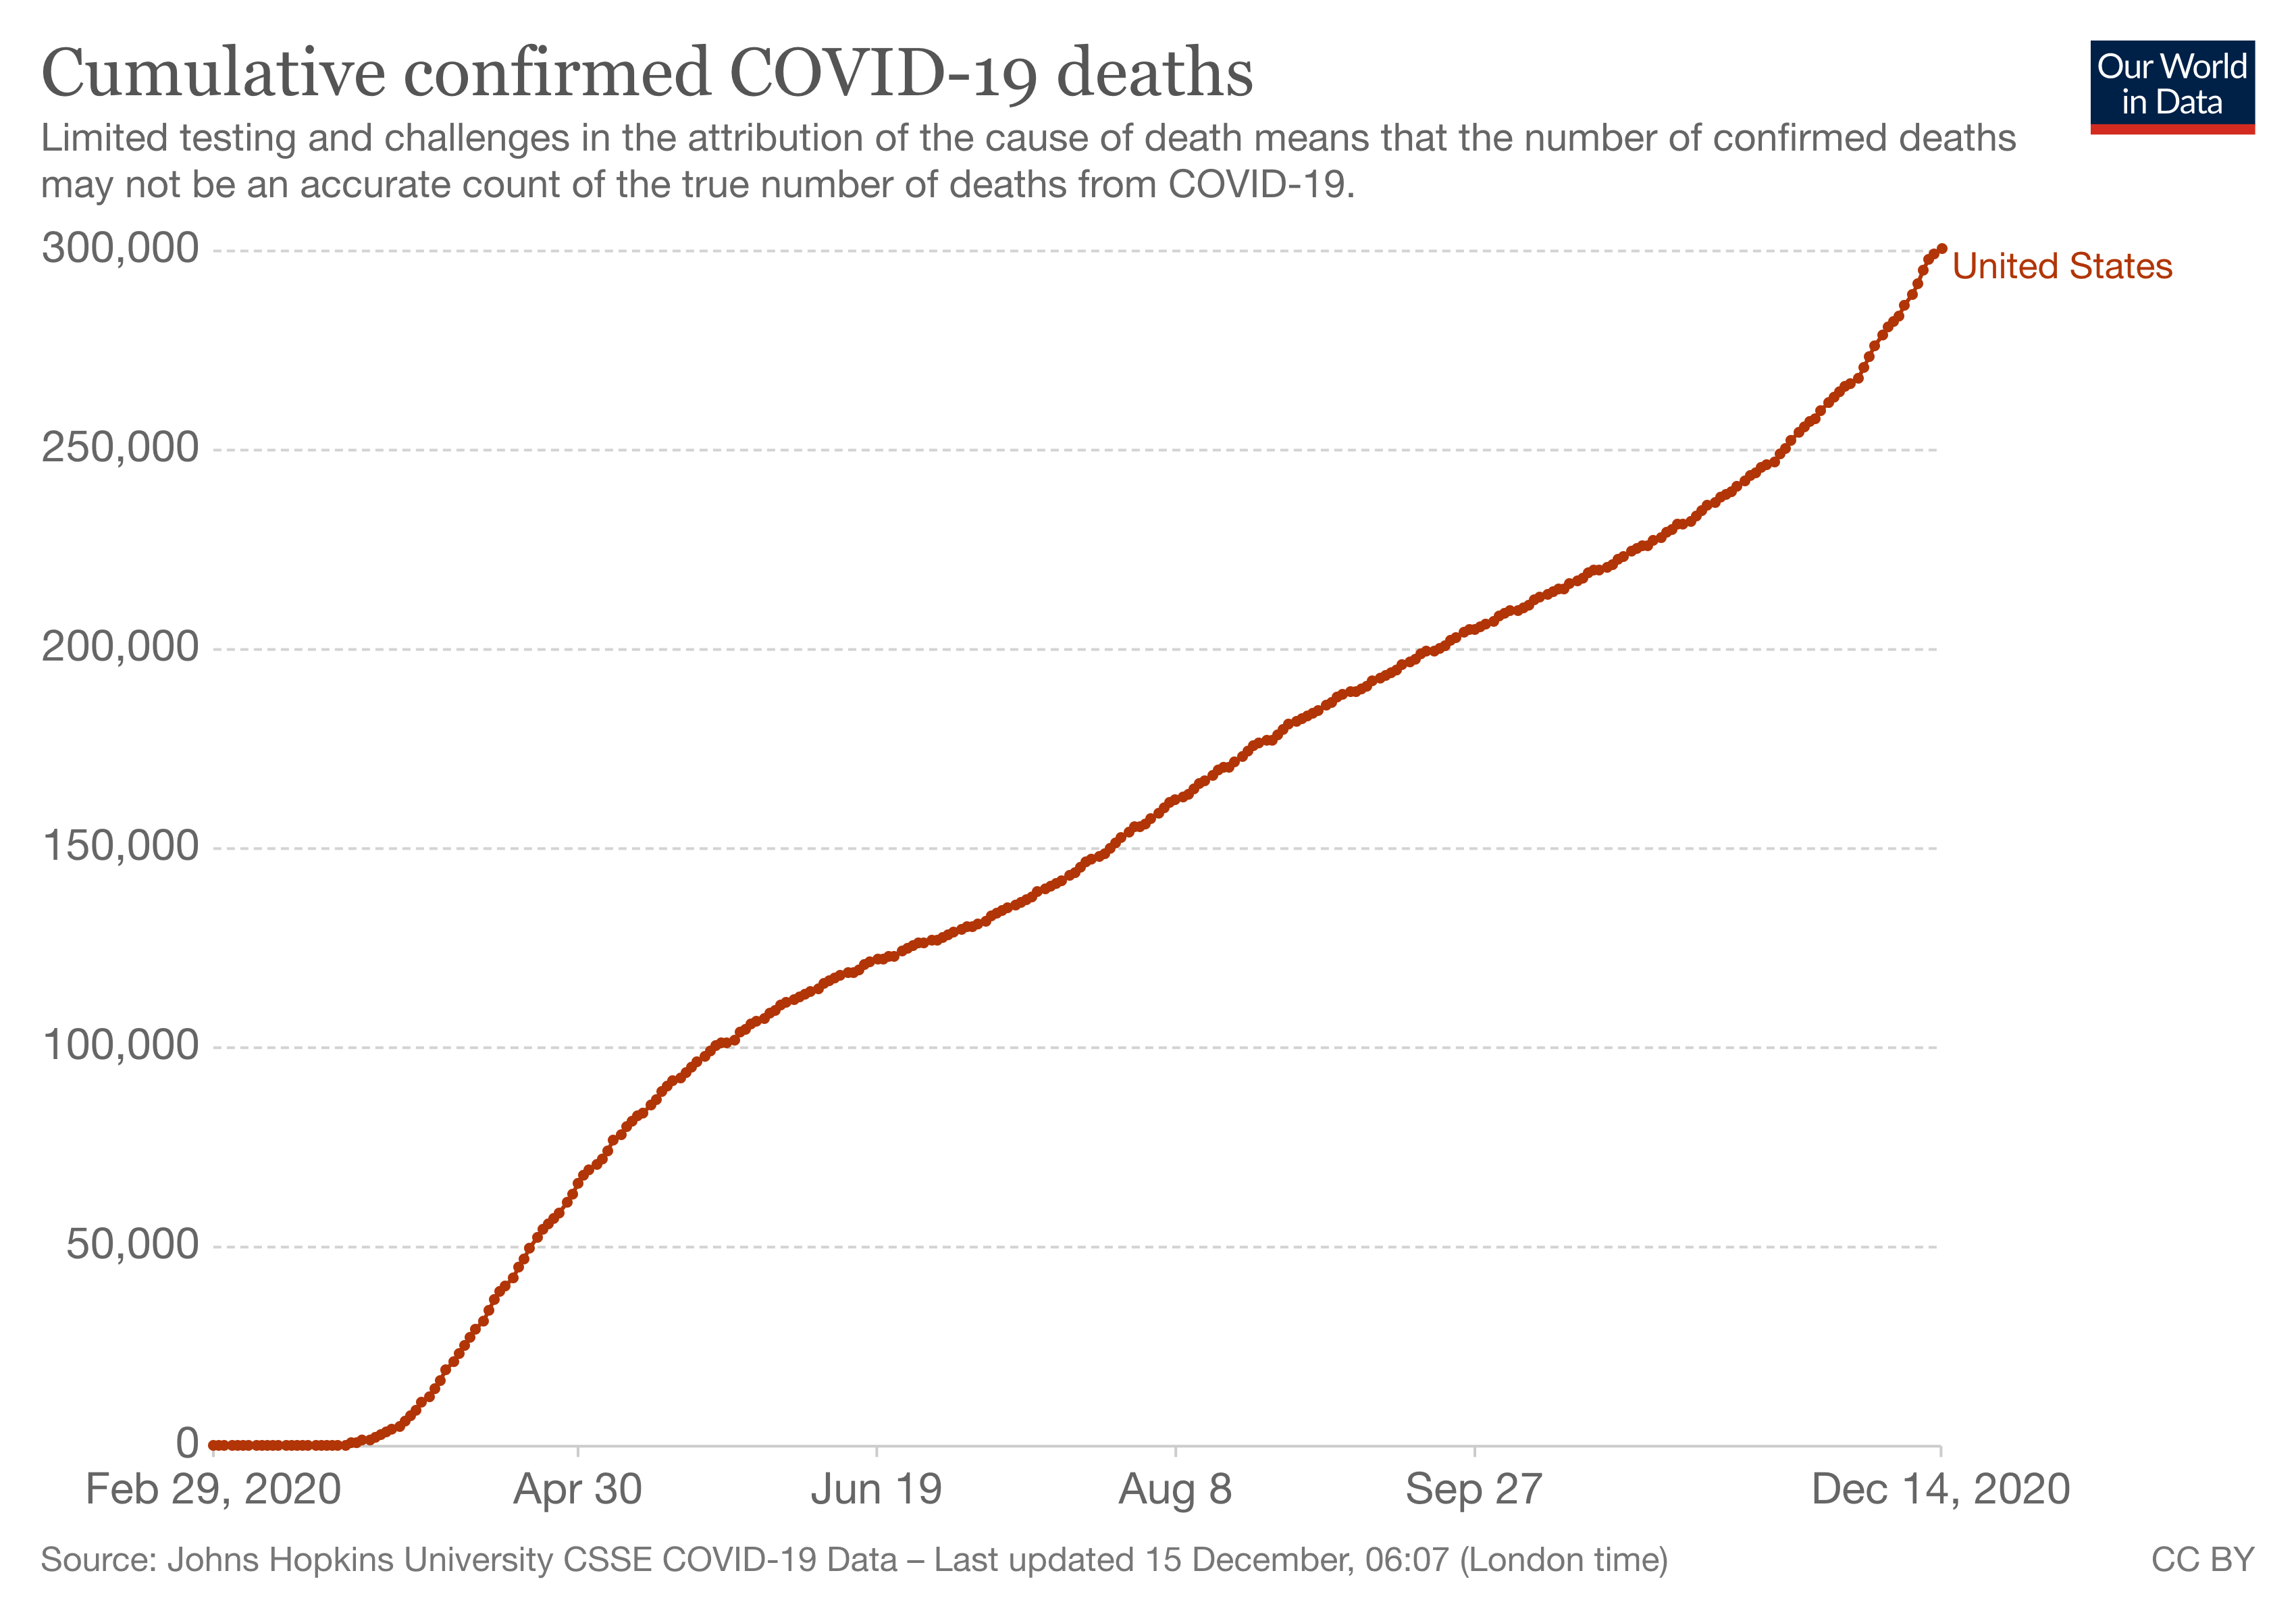 Cumulative confirmed COVID-19 deaths in the United States